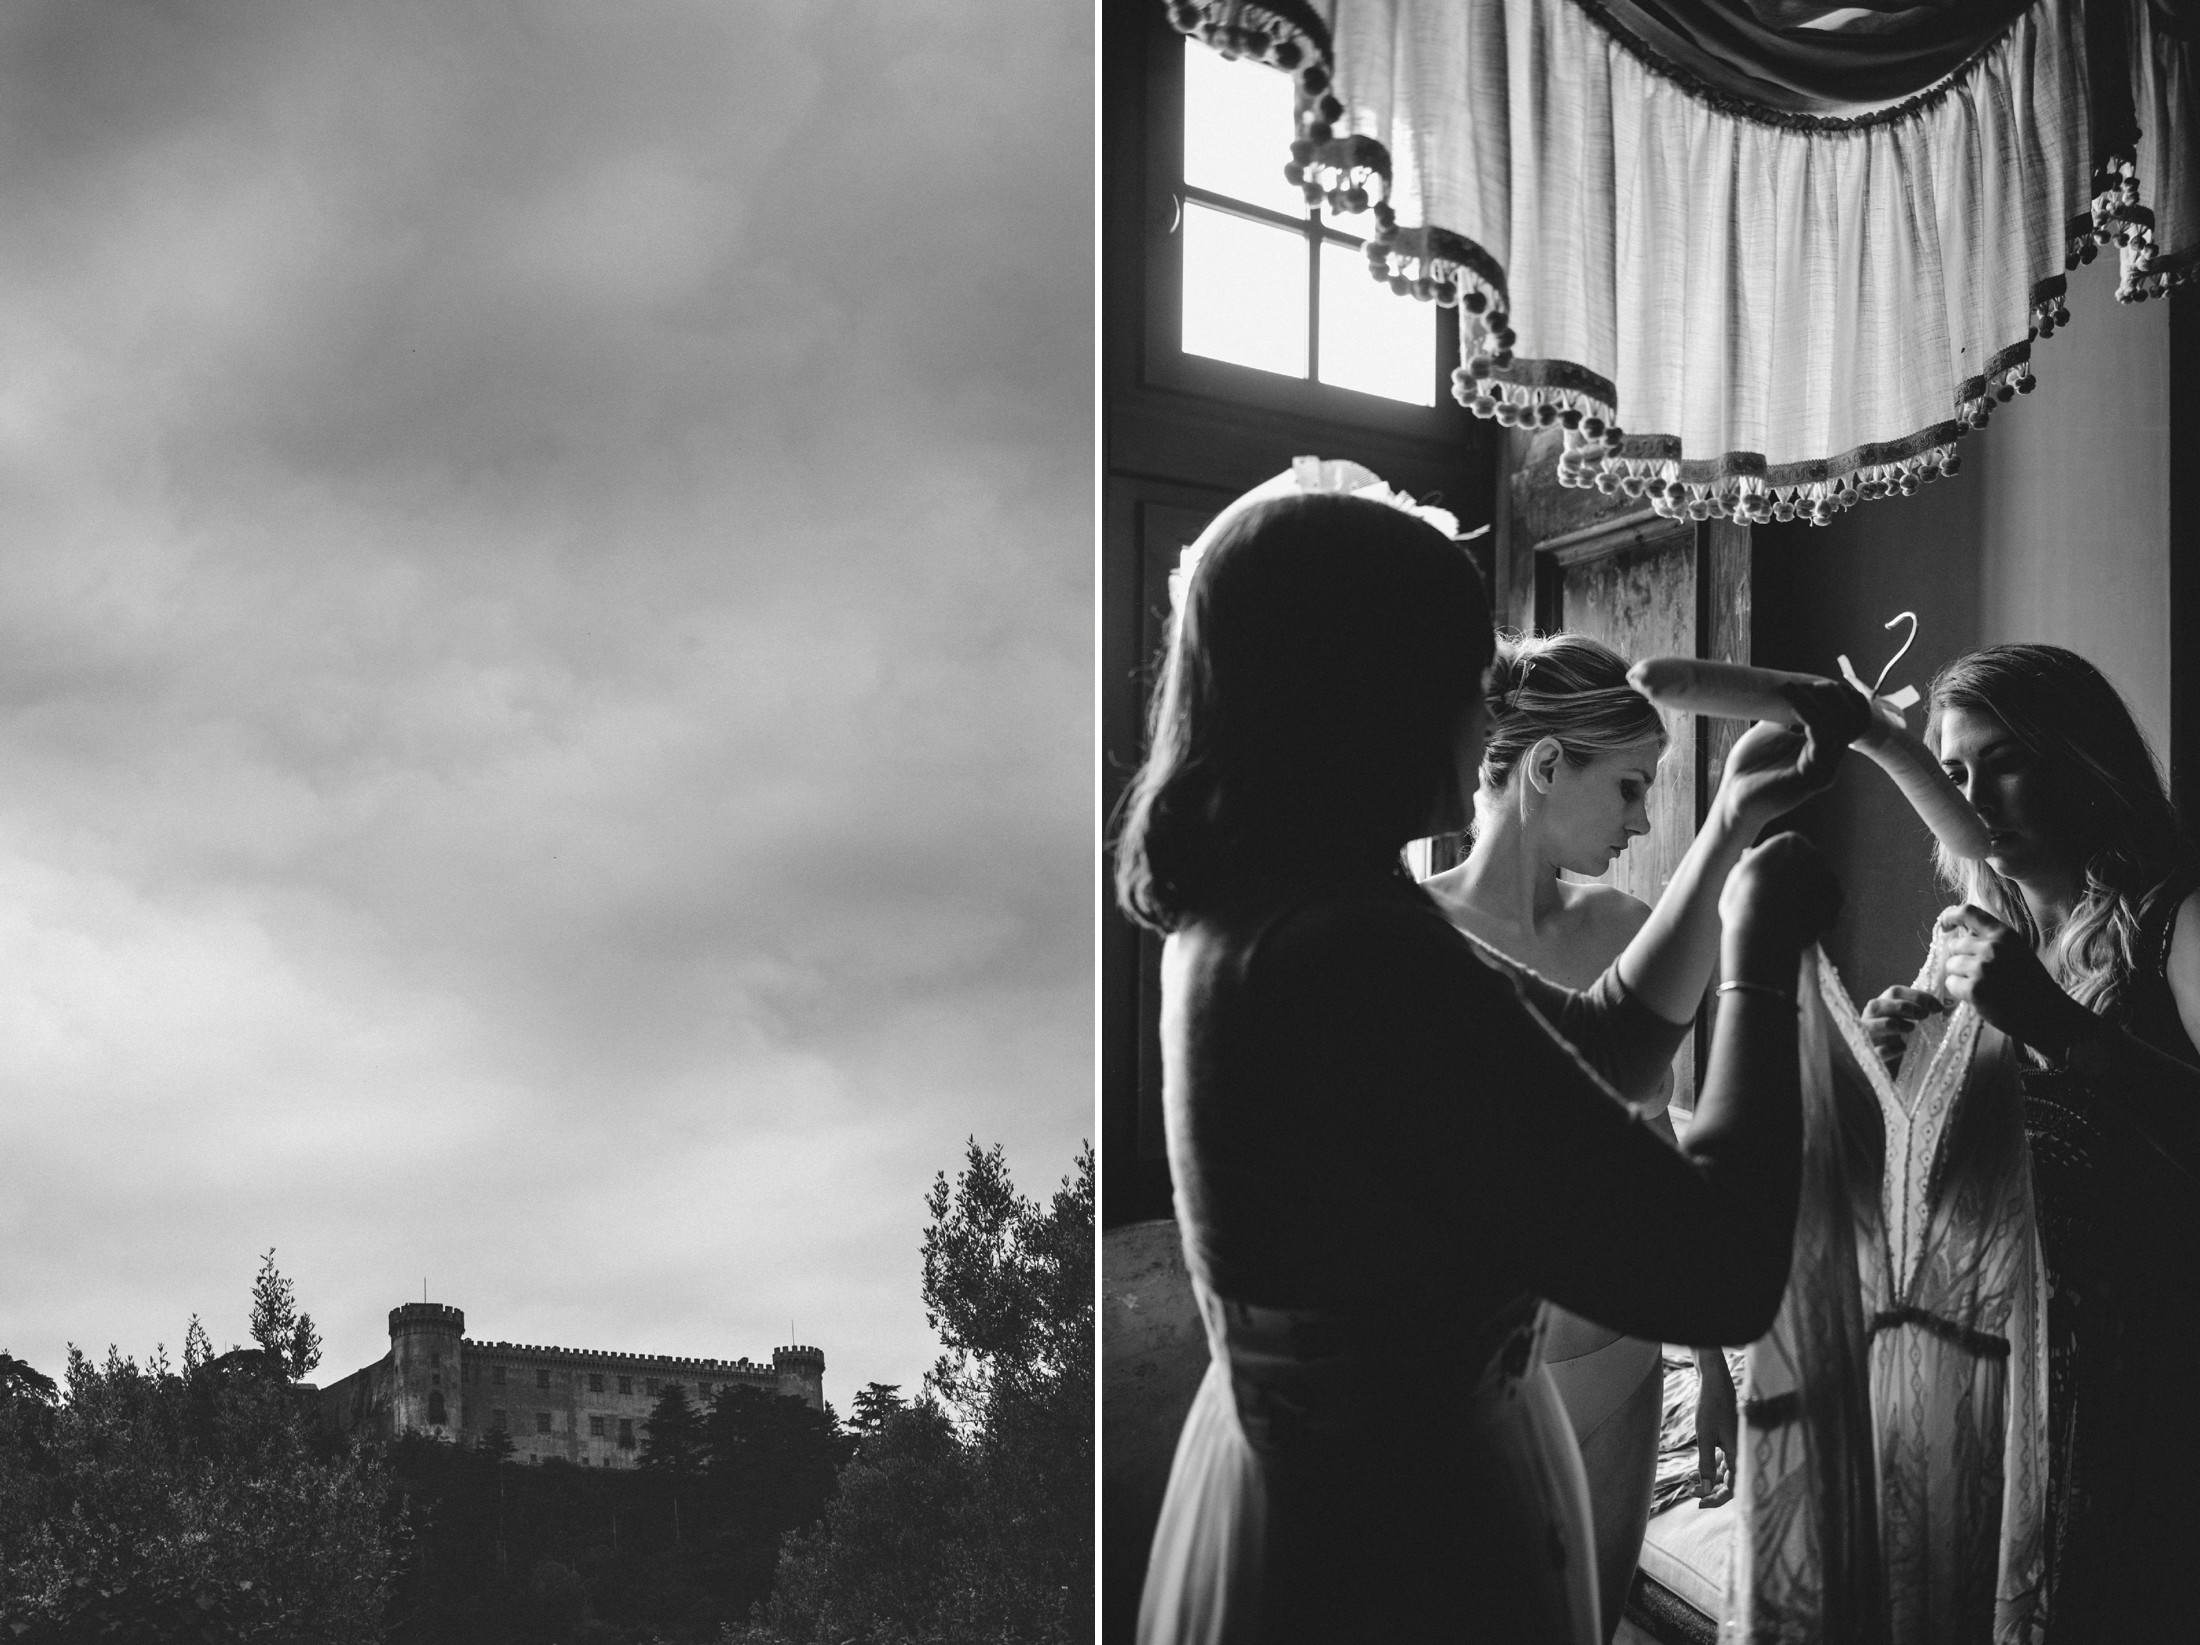 wedding in rome collage castle odescalchi and the bride getting dressed in black and white